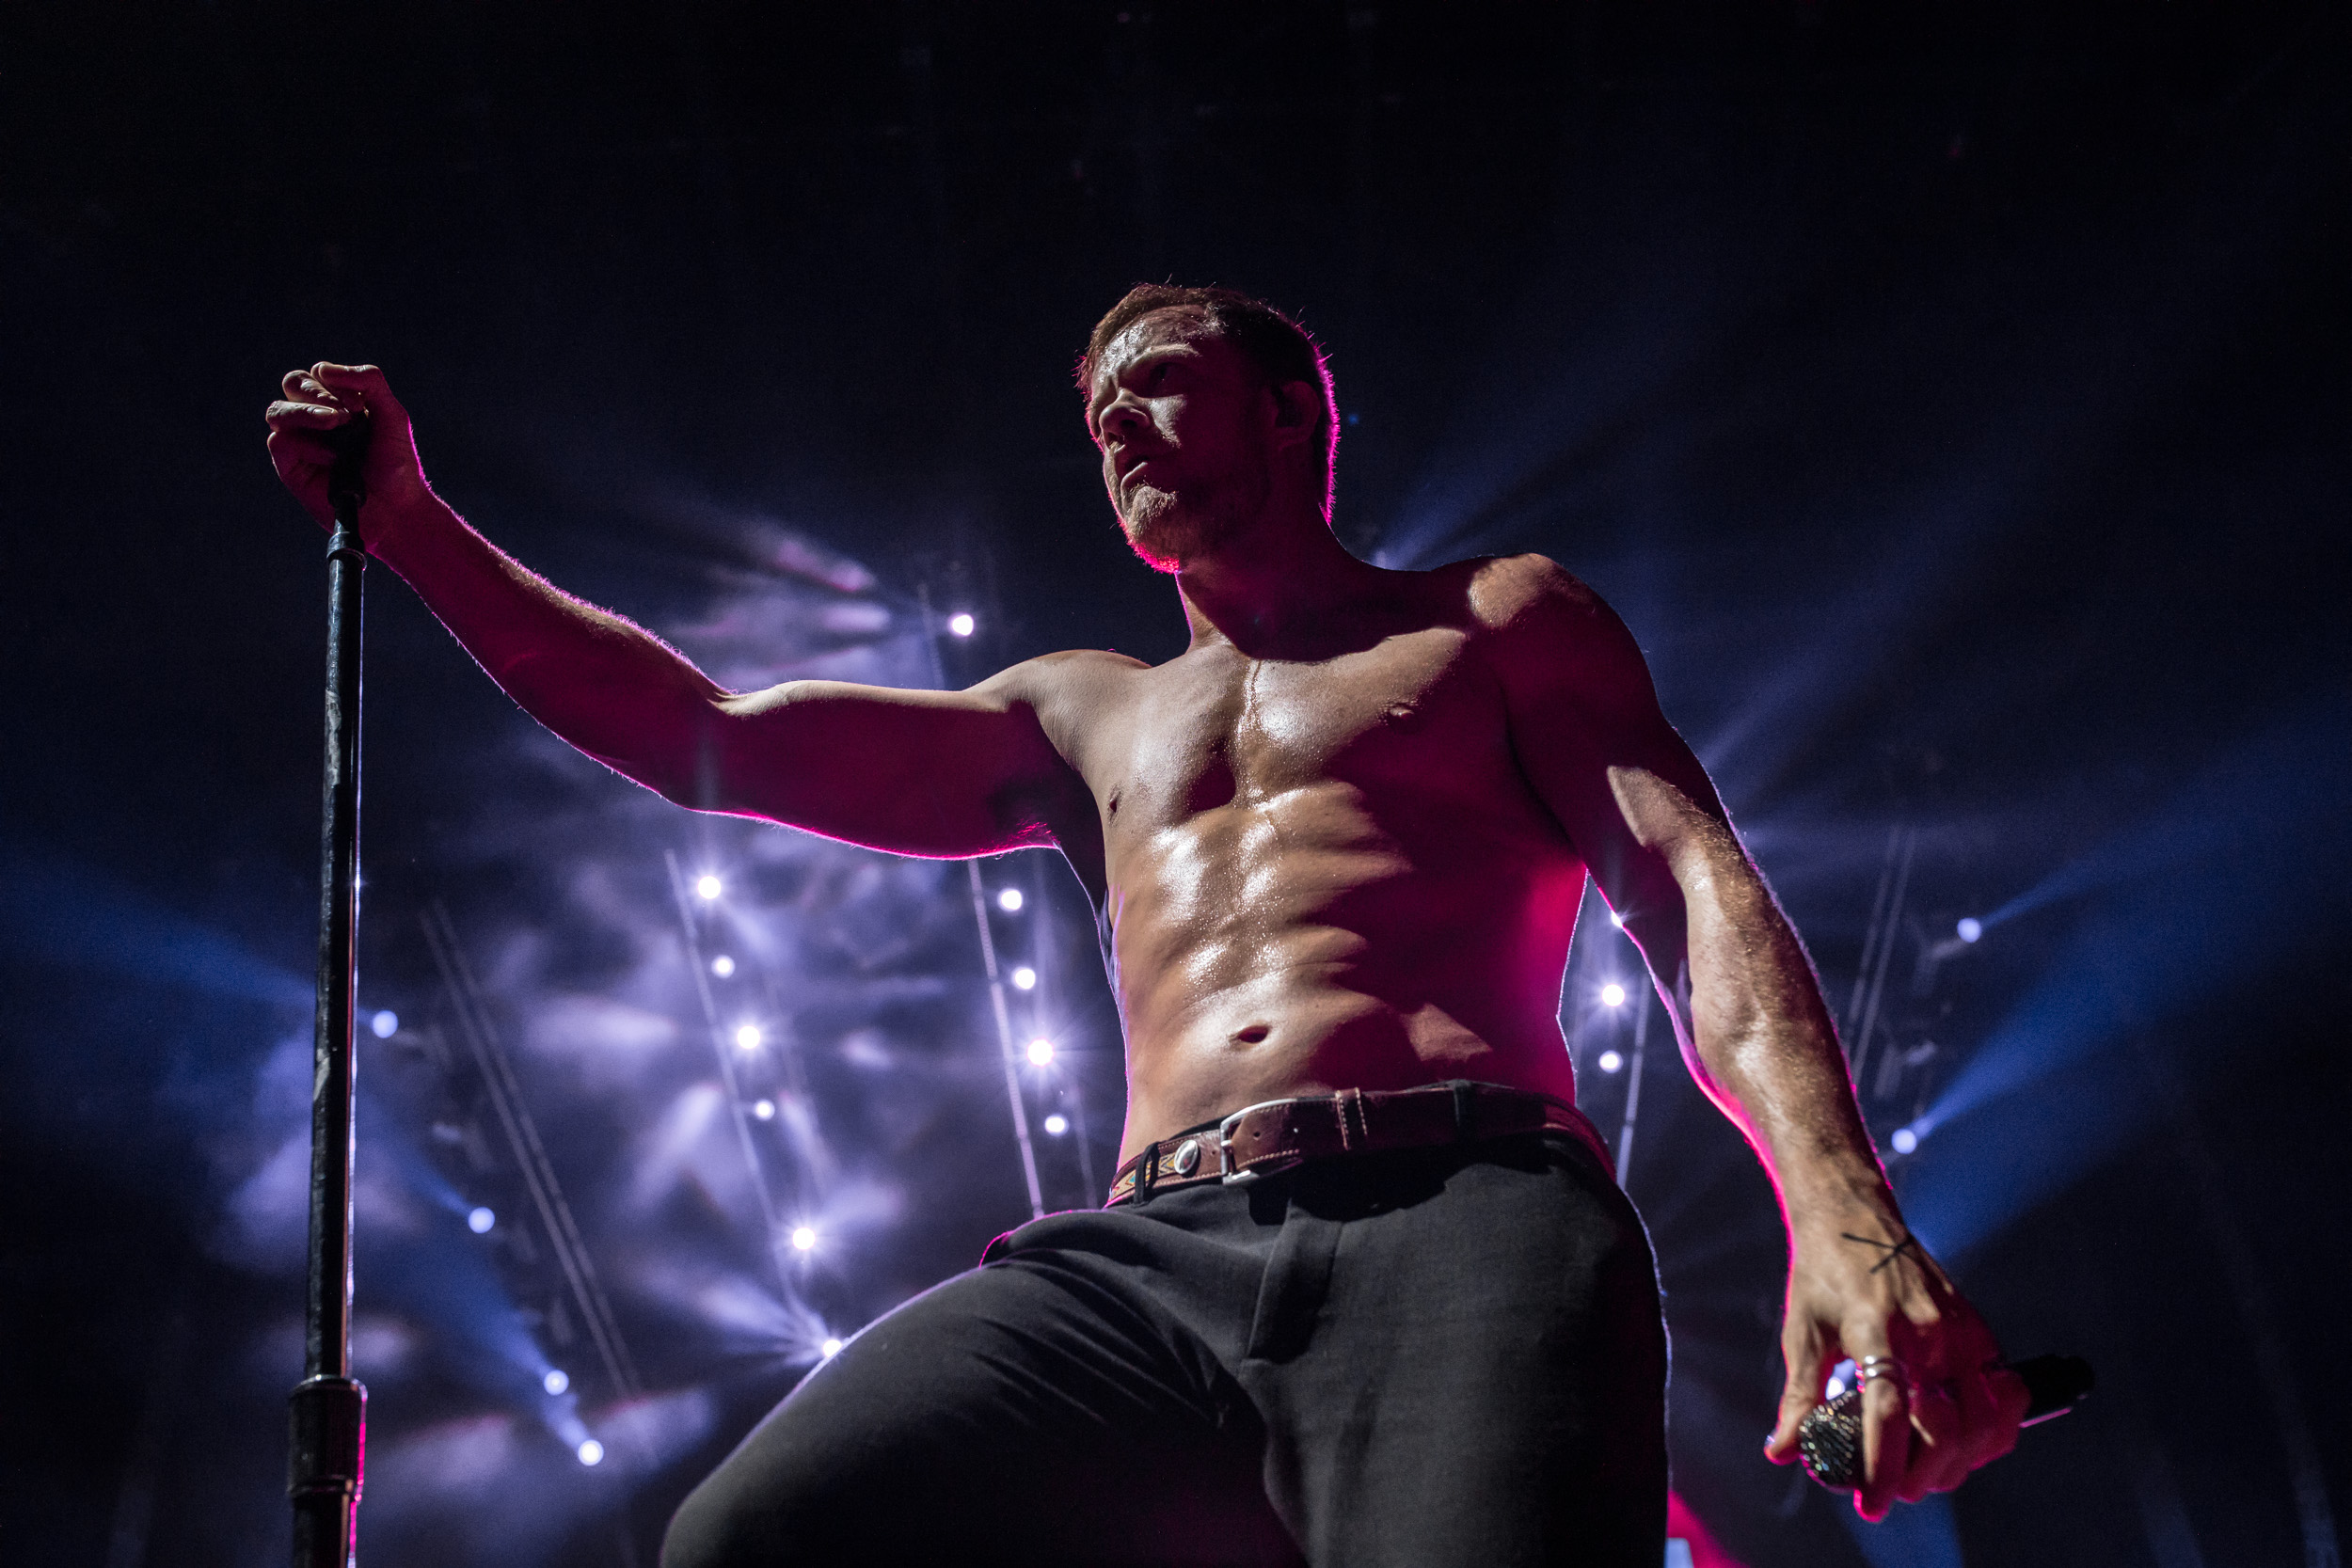 NA-07112018-Imagine Dragons-17.jpg